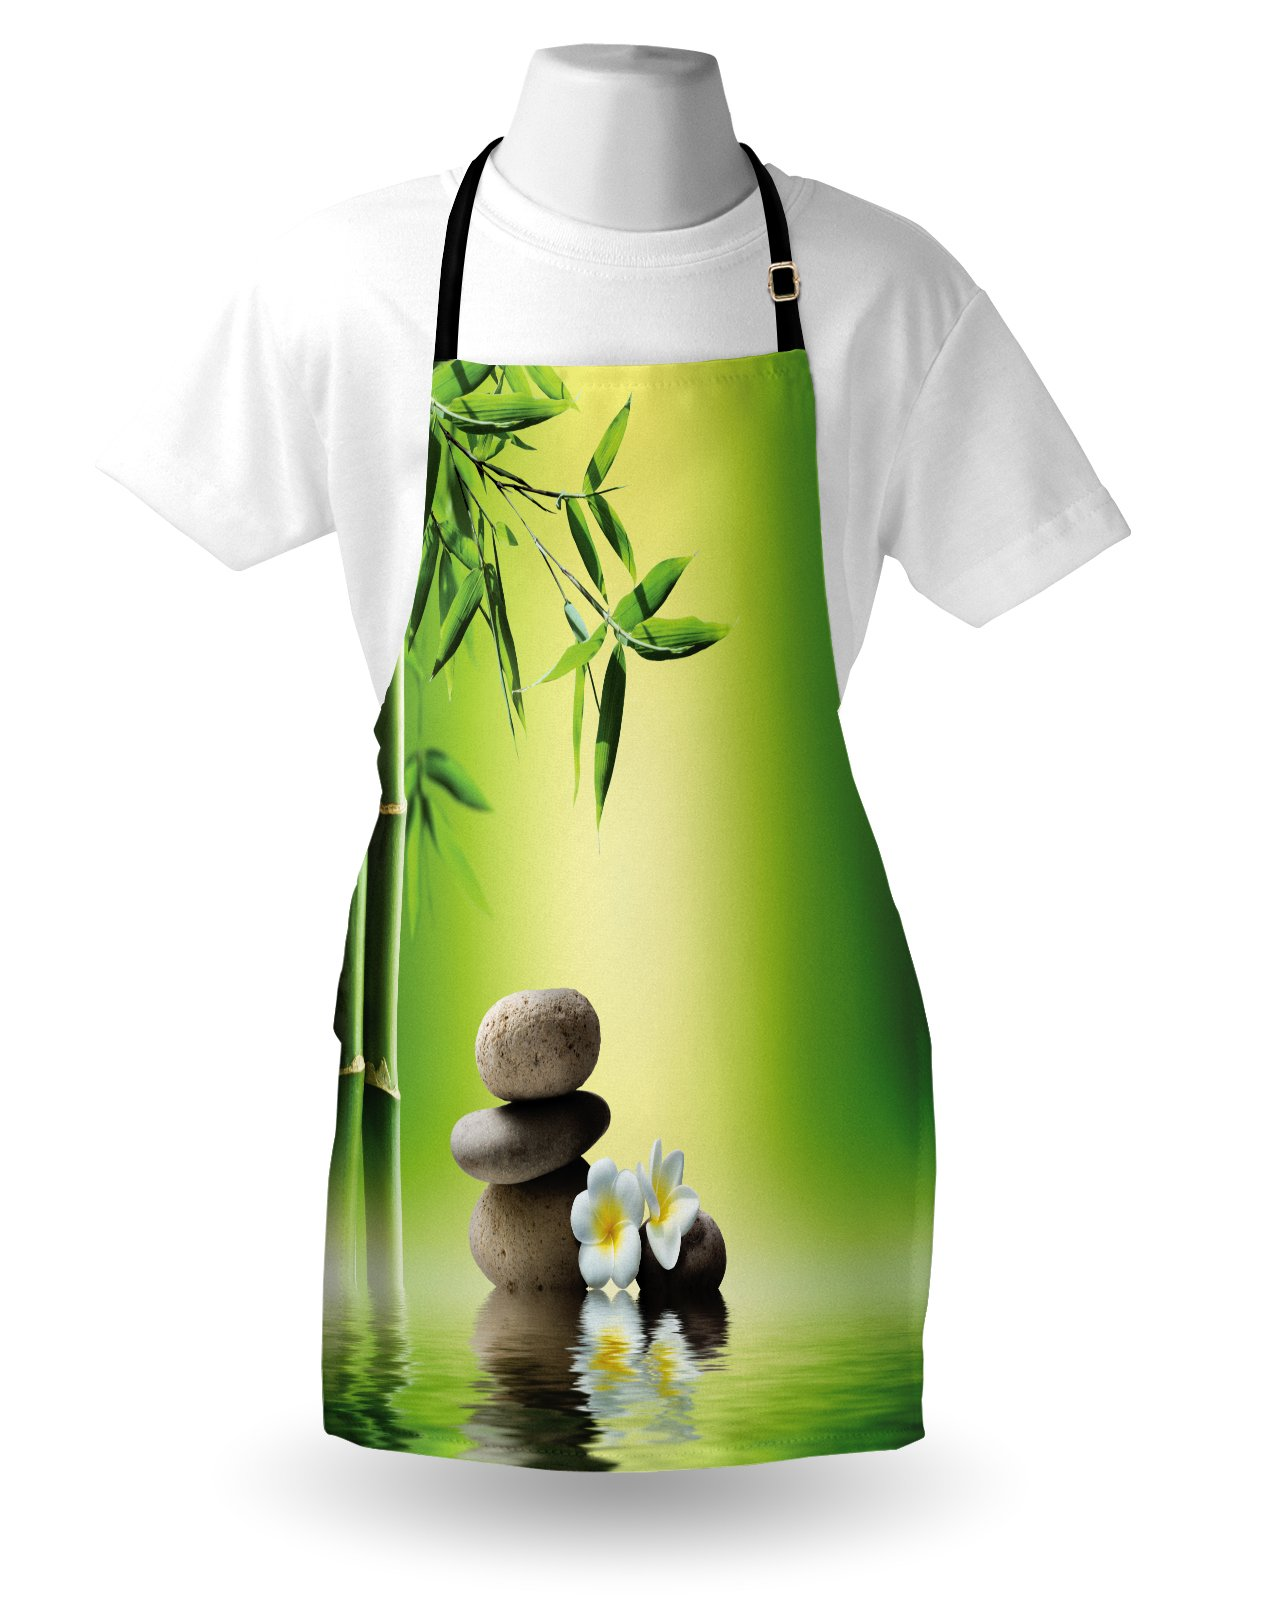 Lunarable Spa Apron, Japanese Therapy Relaxation Stones Frangipani Flowers Bamboo Tree Healthcare Theme, Unisex Kitchen Bib Apron with Adjustable Neck for Cooking Baking Gardening, Green Yellow by Lunarable (Image #3)